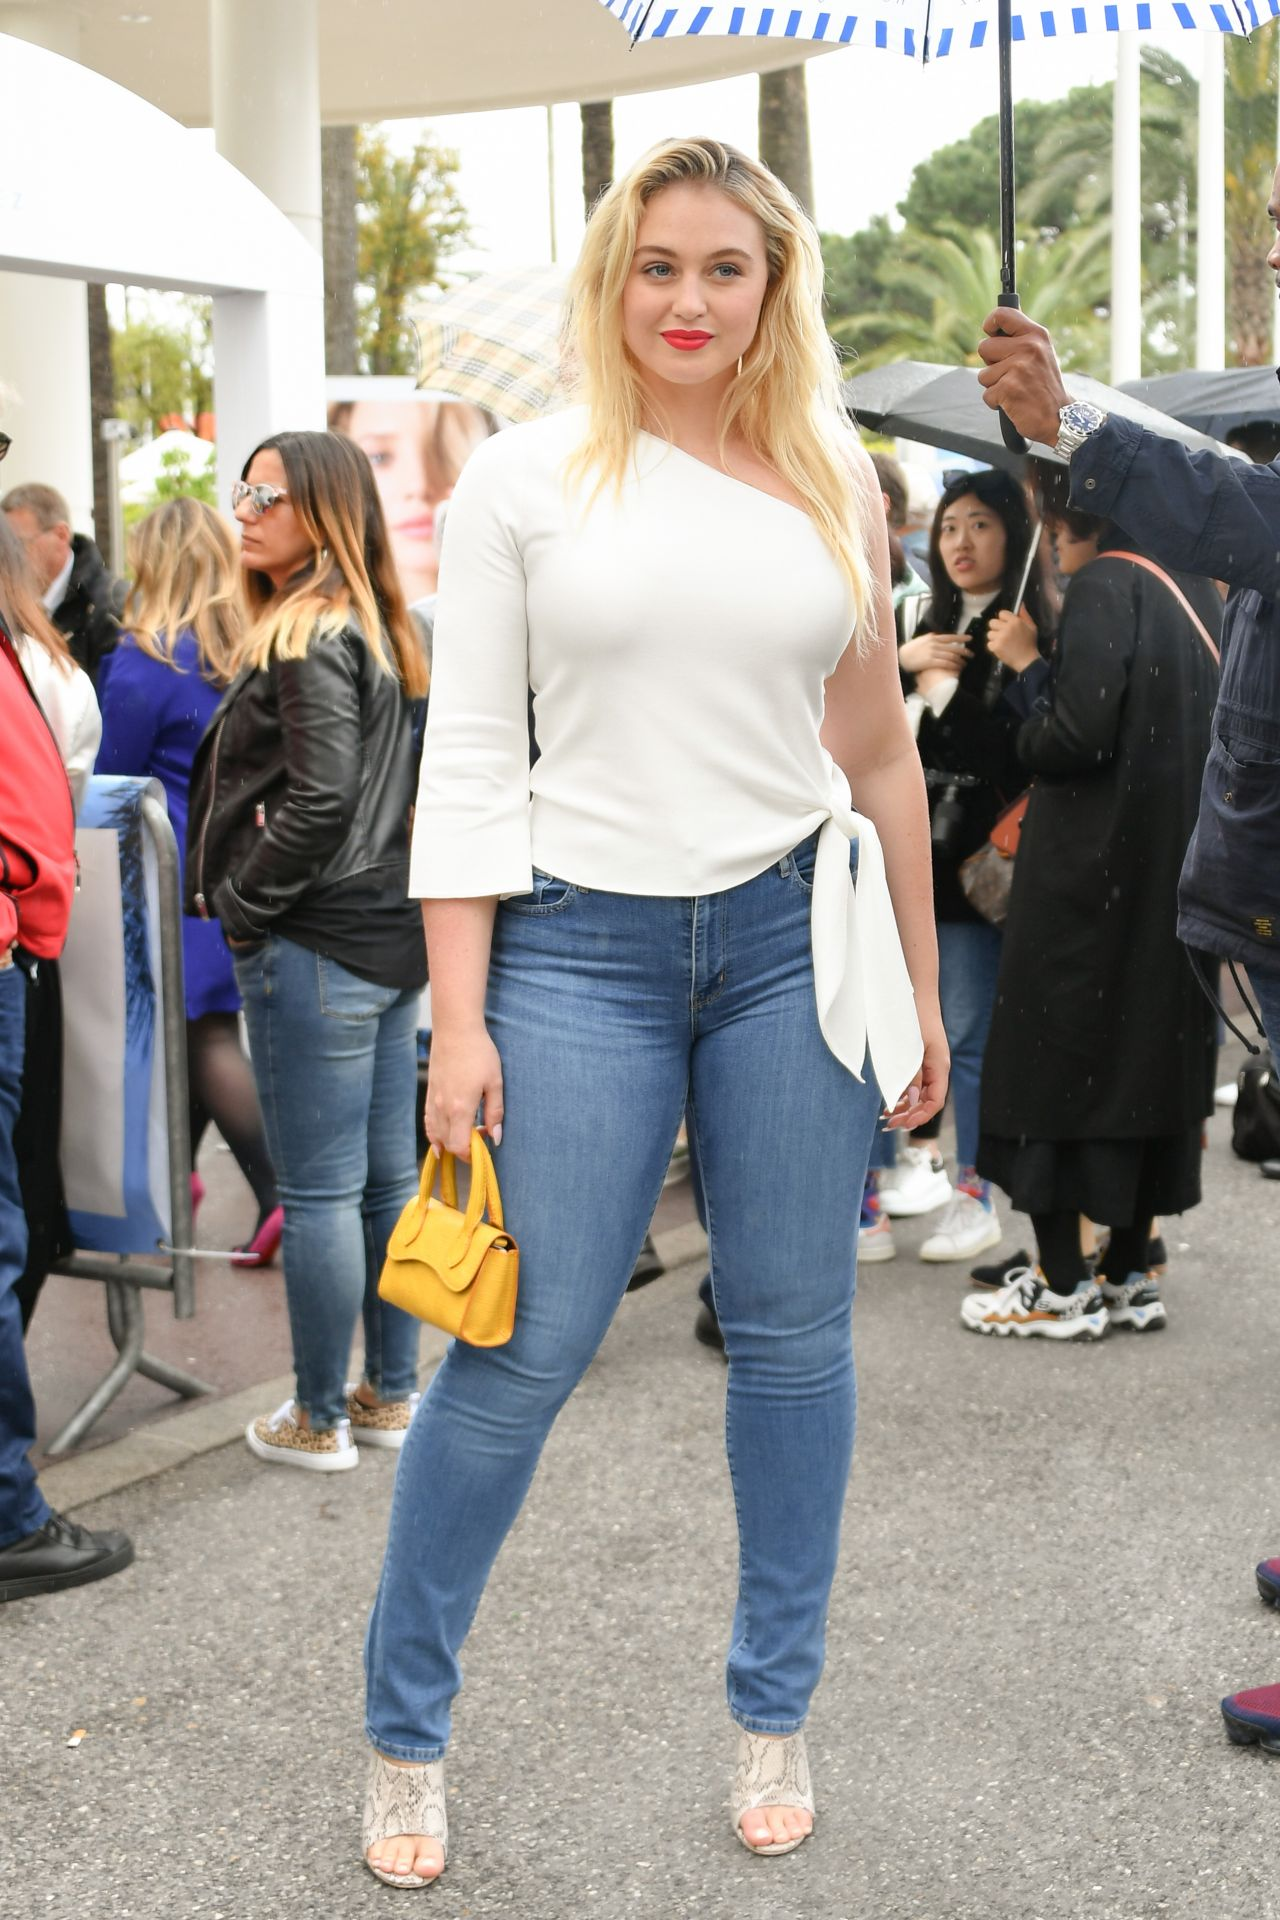 Iskra Lawrence On The Croisette In Cannes 05/19/2019 - Girl , HD Wallpaper & Backgrounds